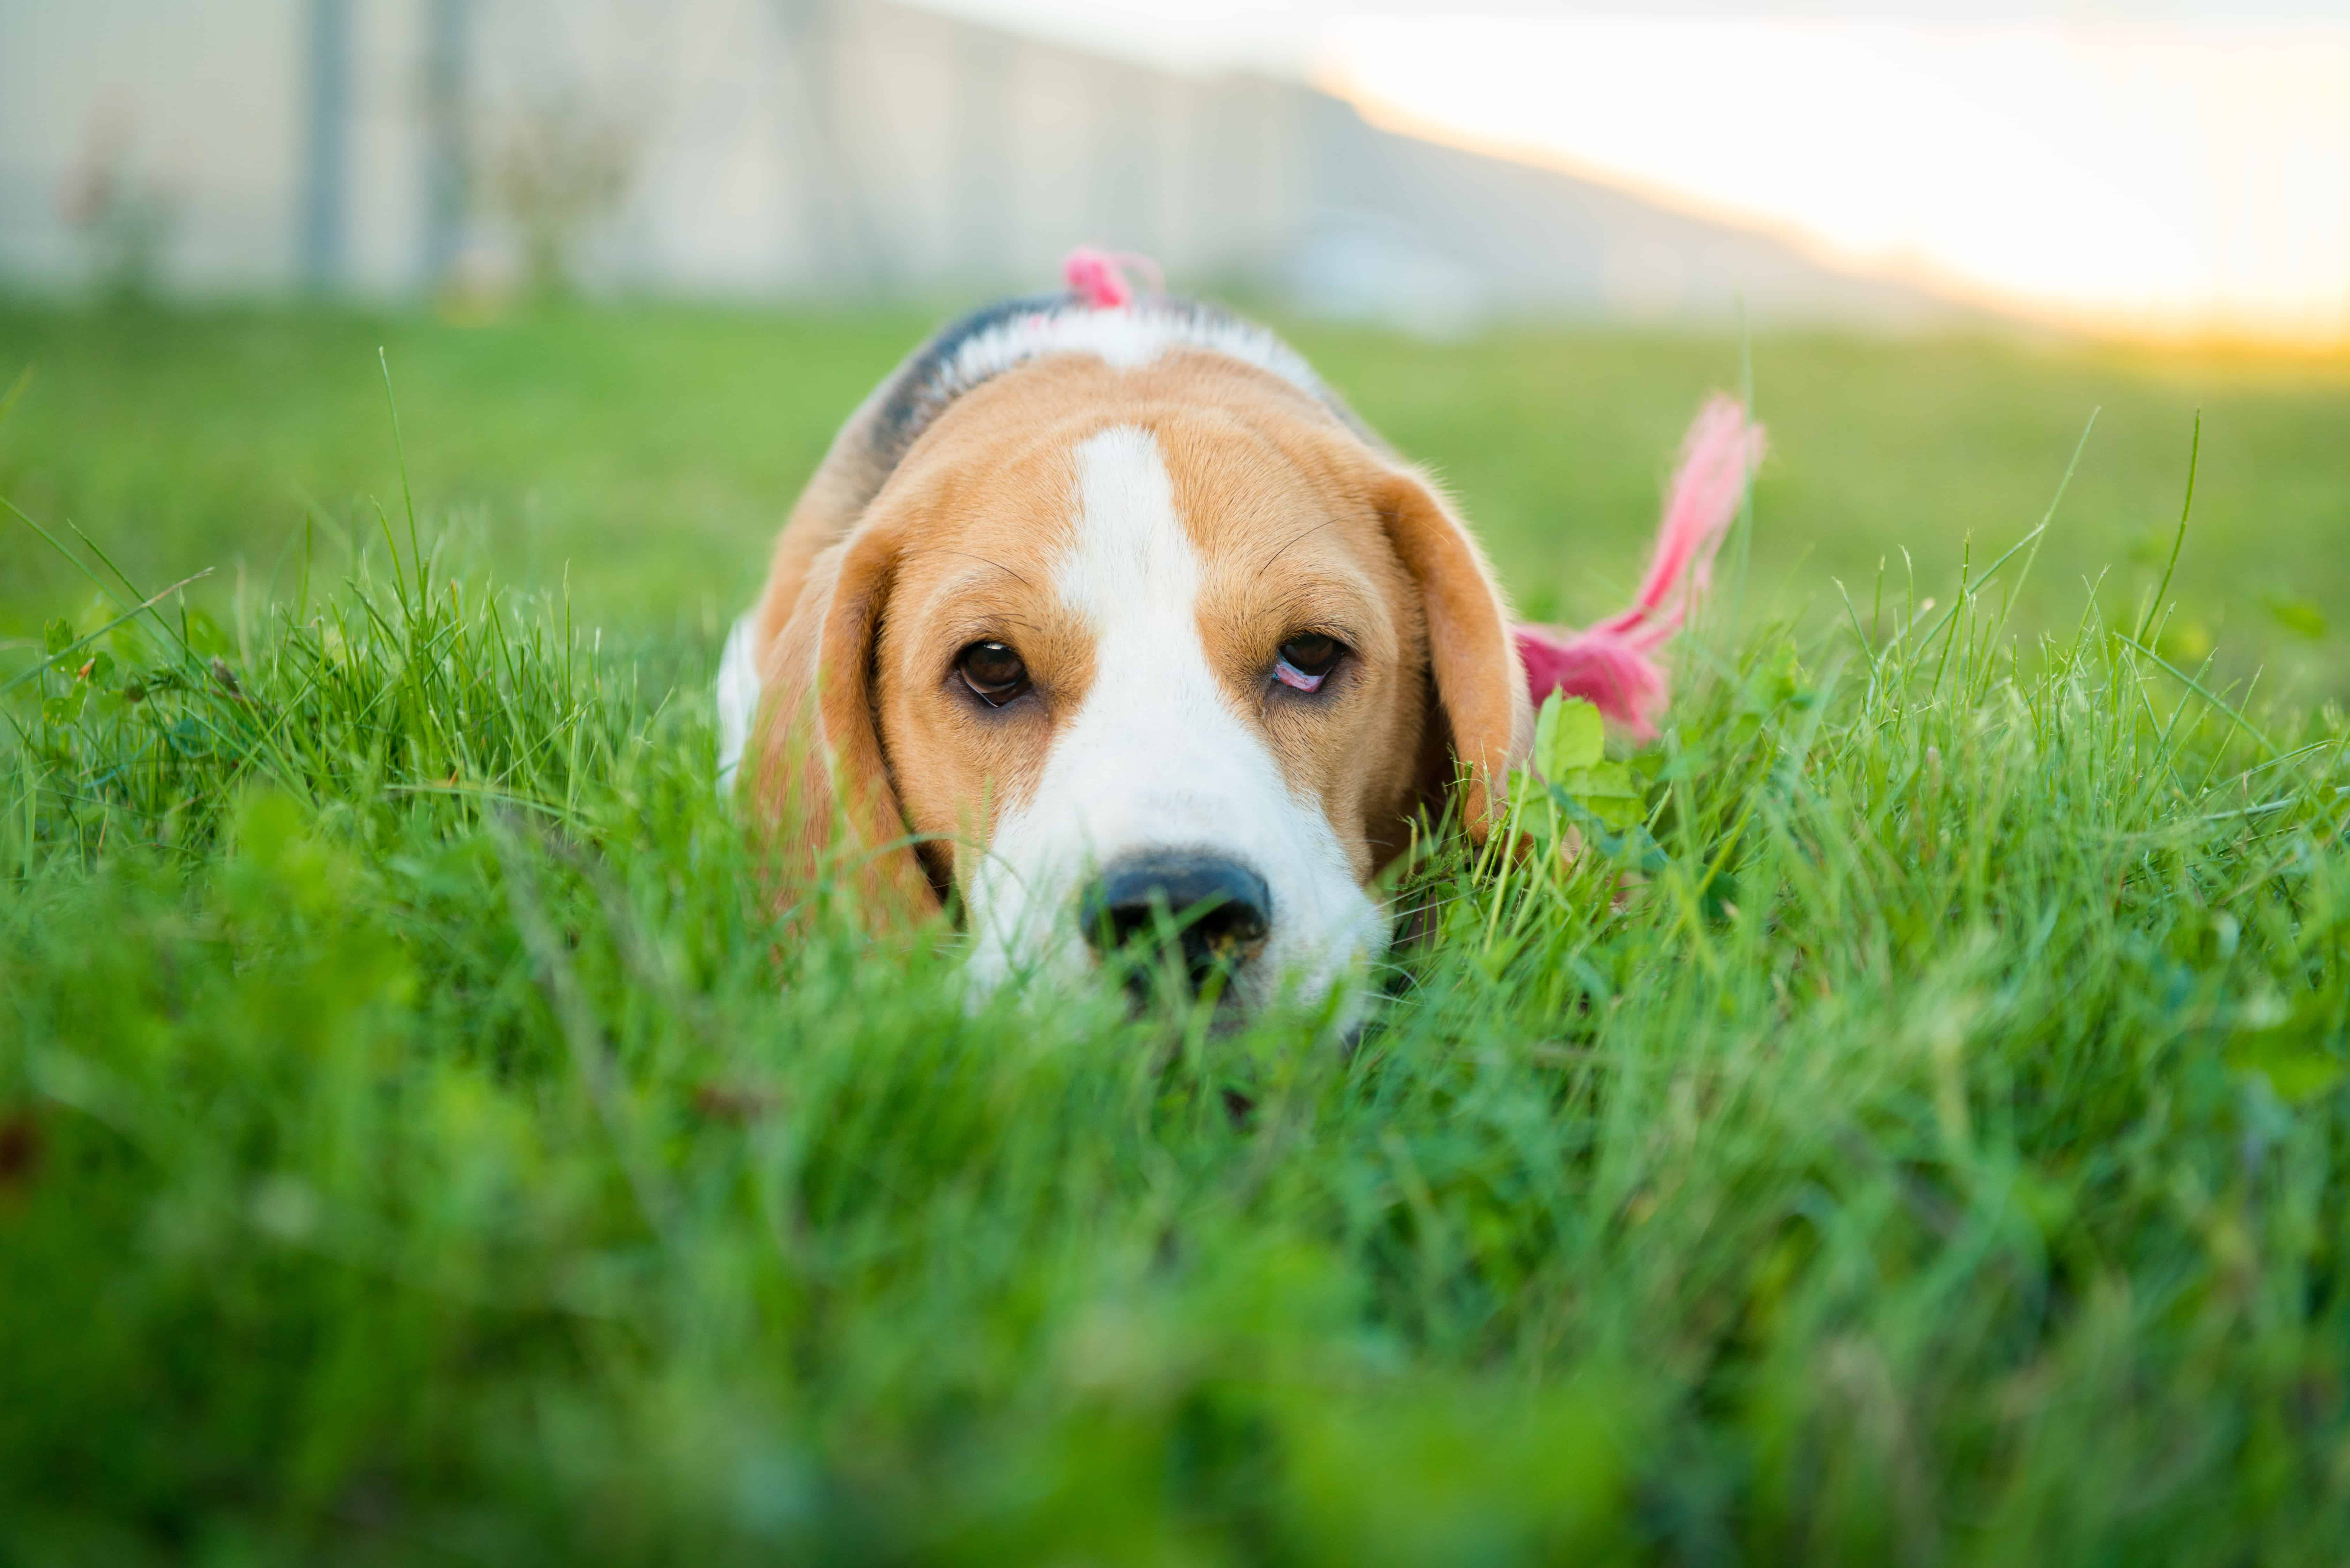 beagle posing outside on grass